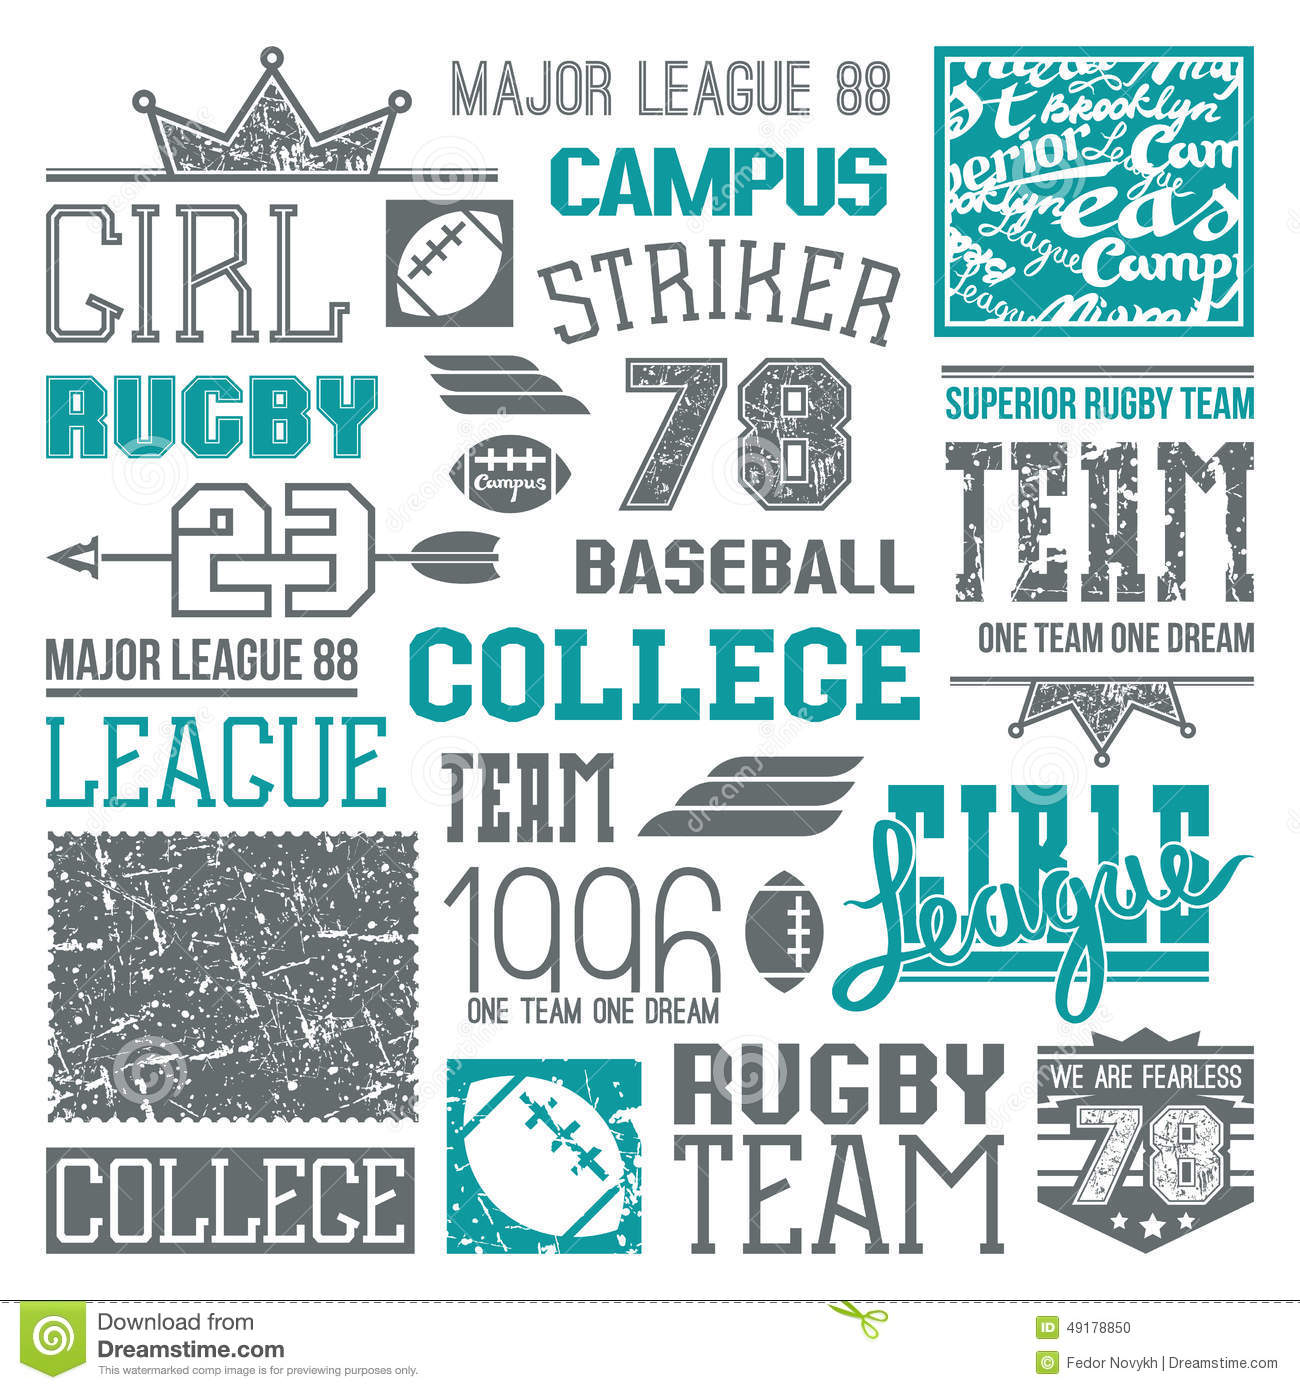 Shirt design elements - Rugby And Baseball Team College Design Elements